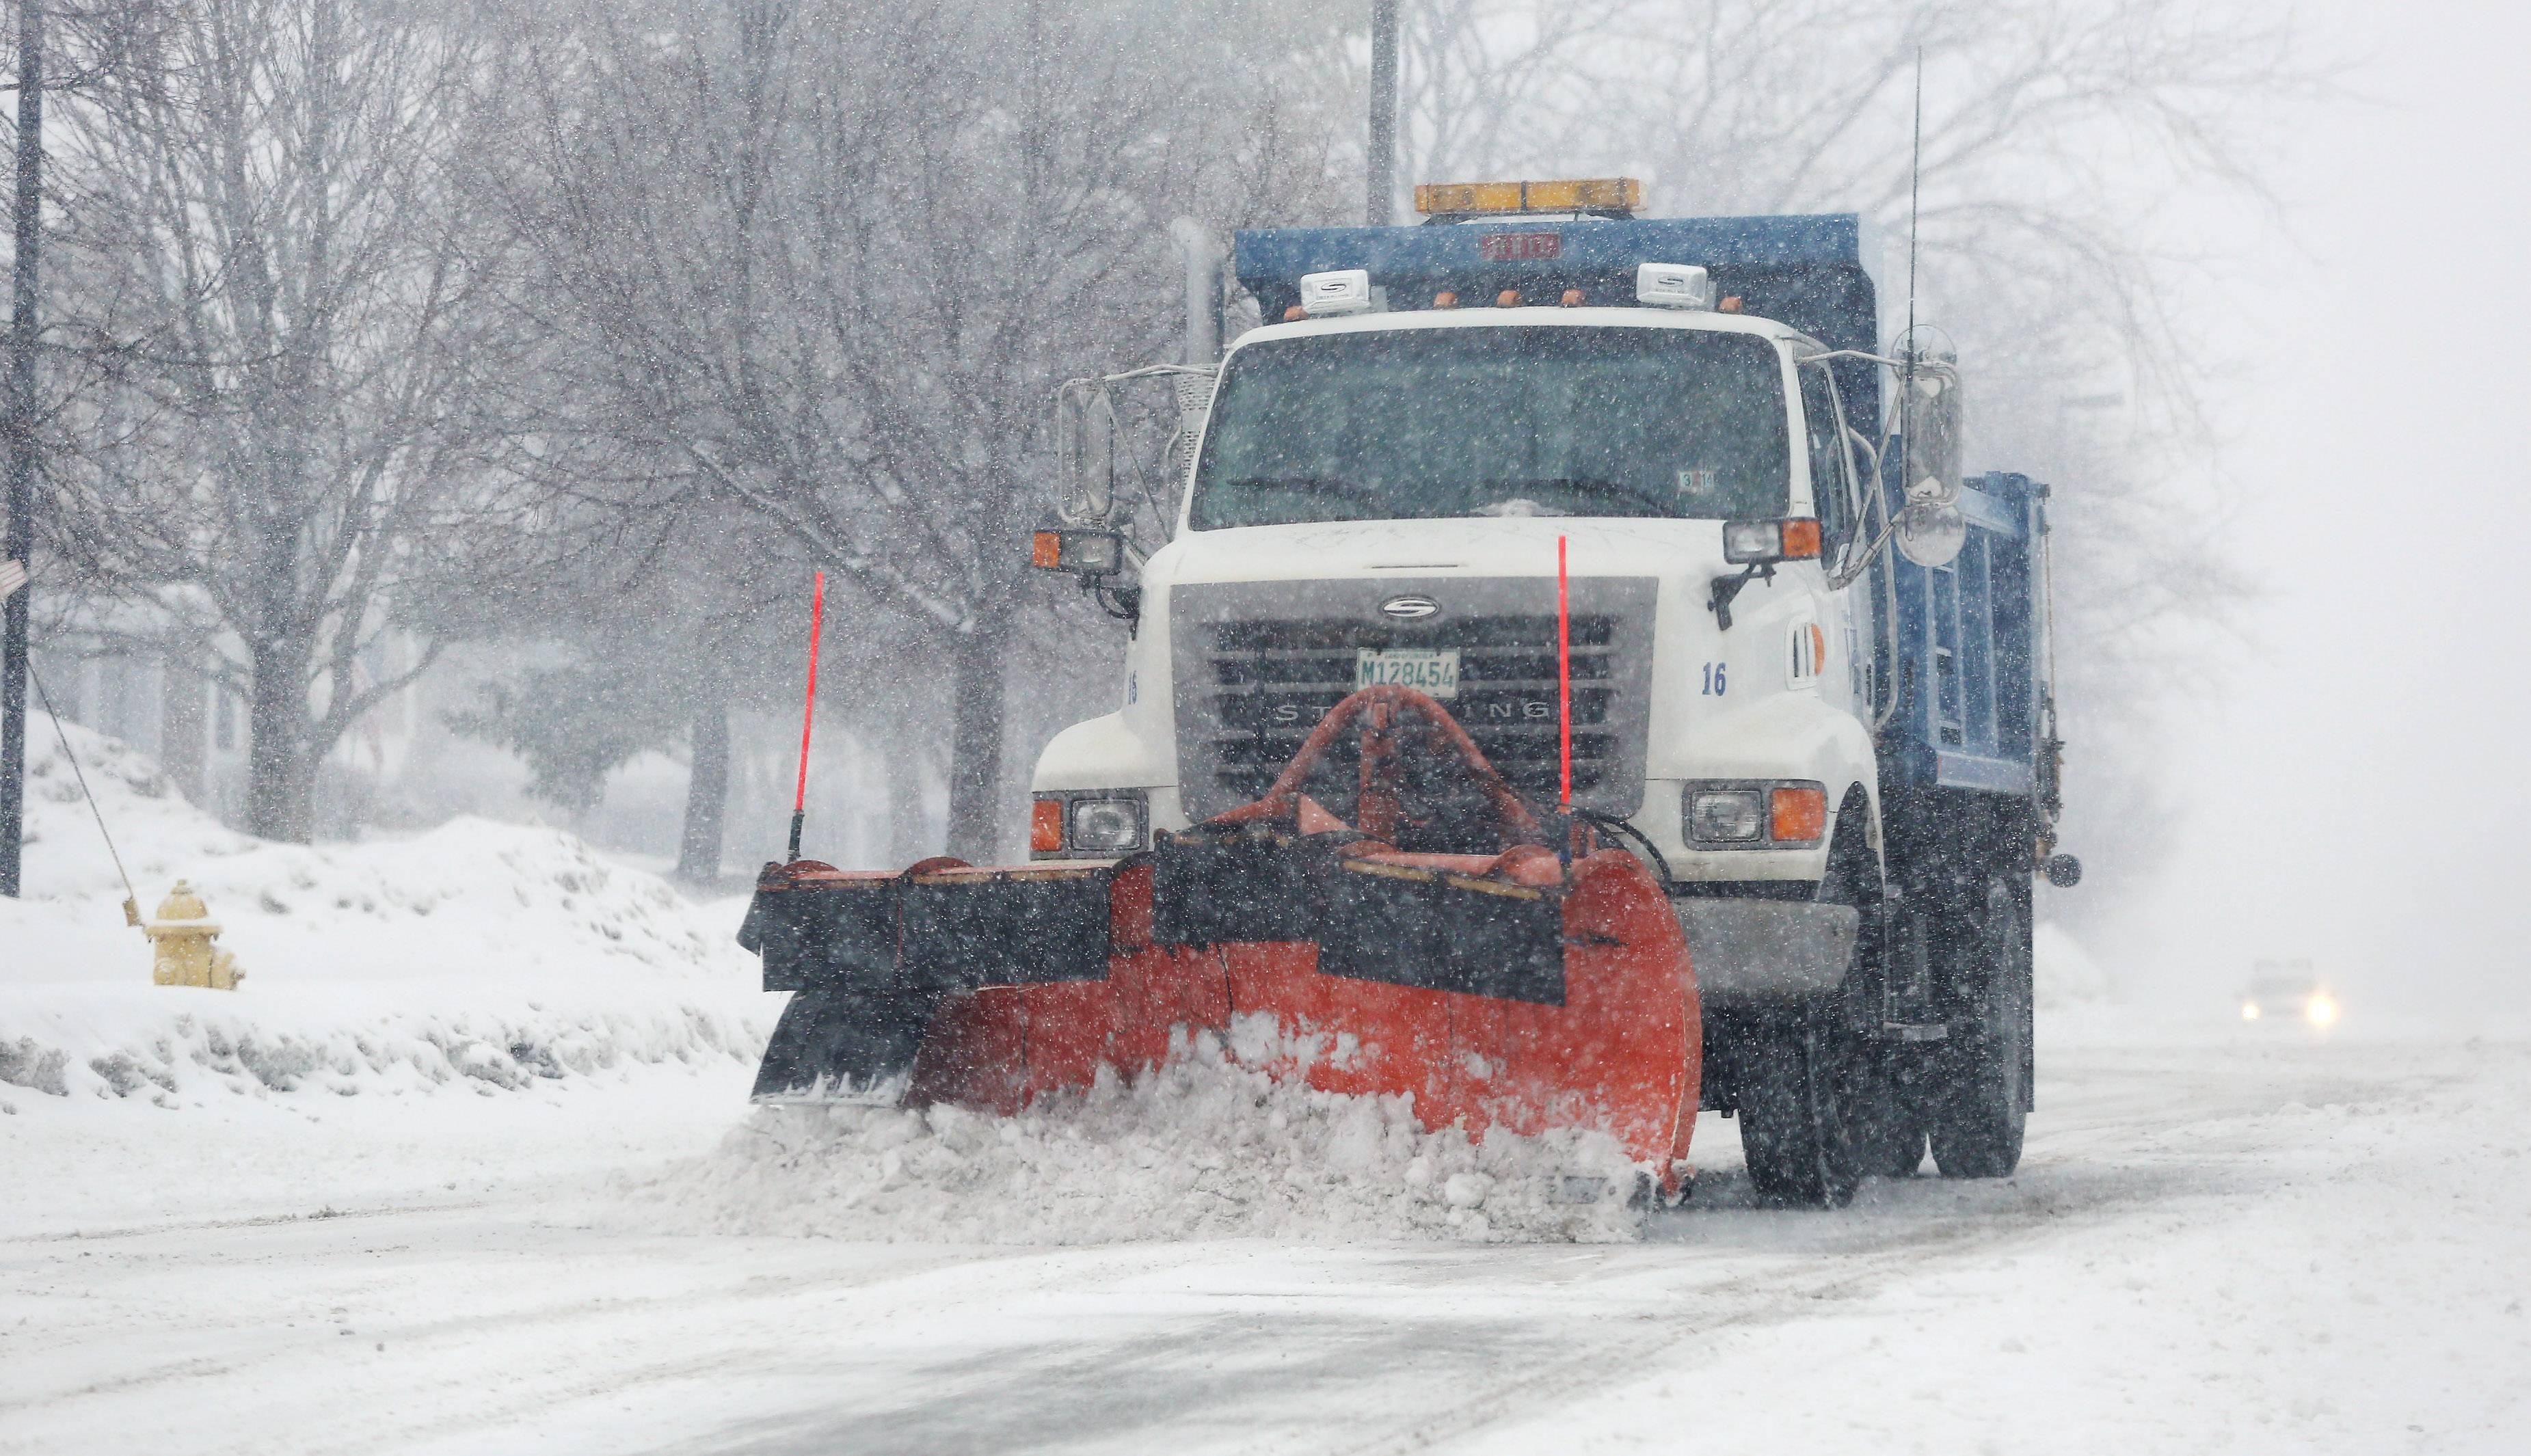 A Vernon Hills Public Works snowplow clears Deerpath Road before rush hour traffic Monday. Snow fell throughout the day in Lake County.